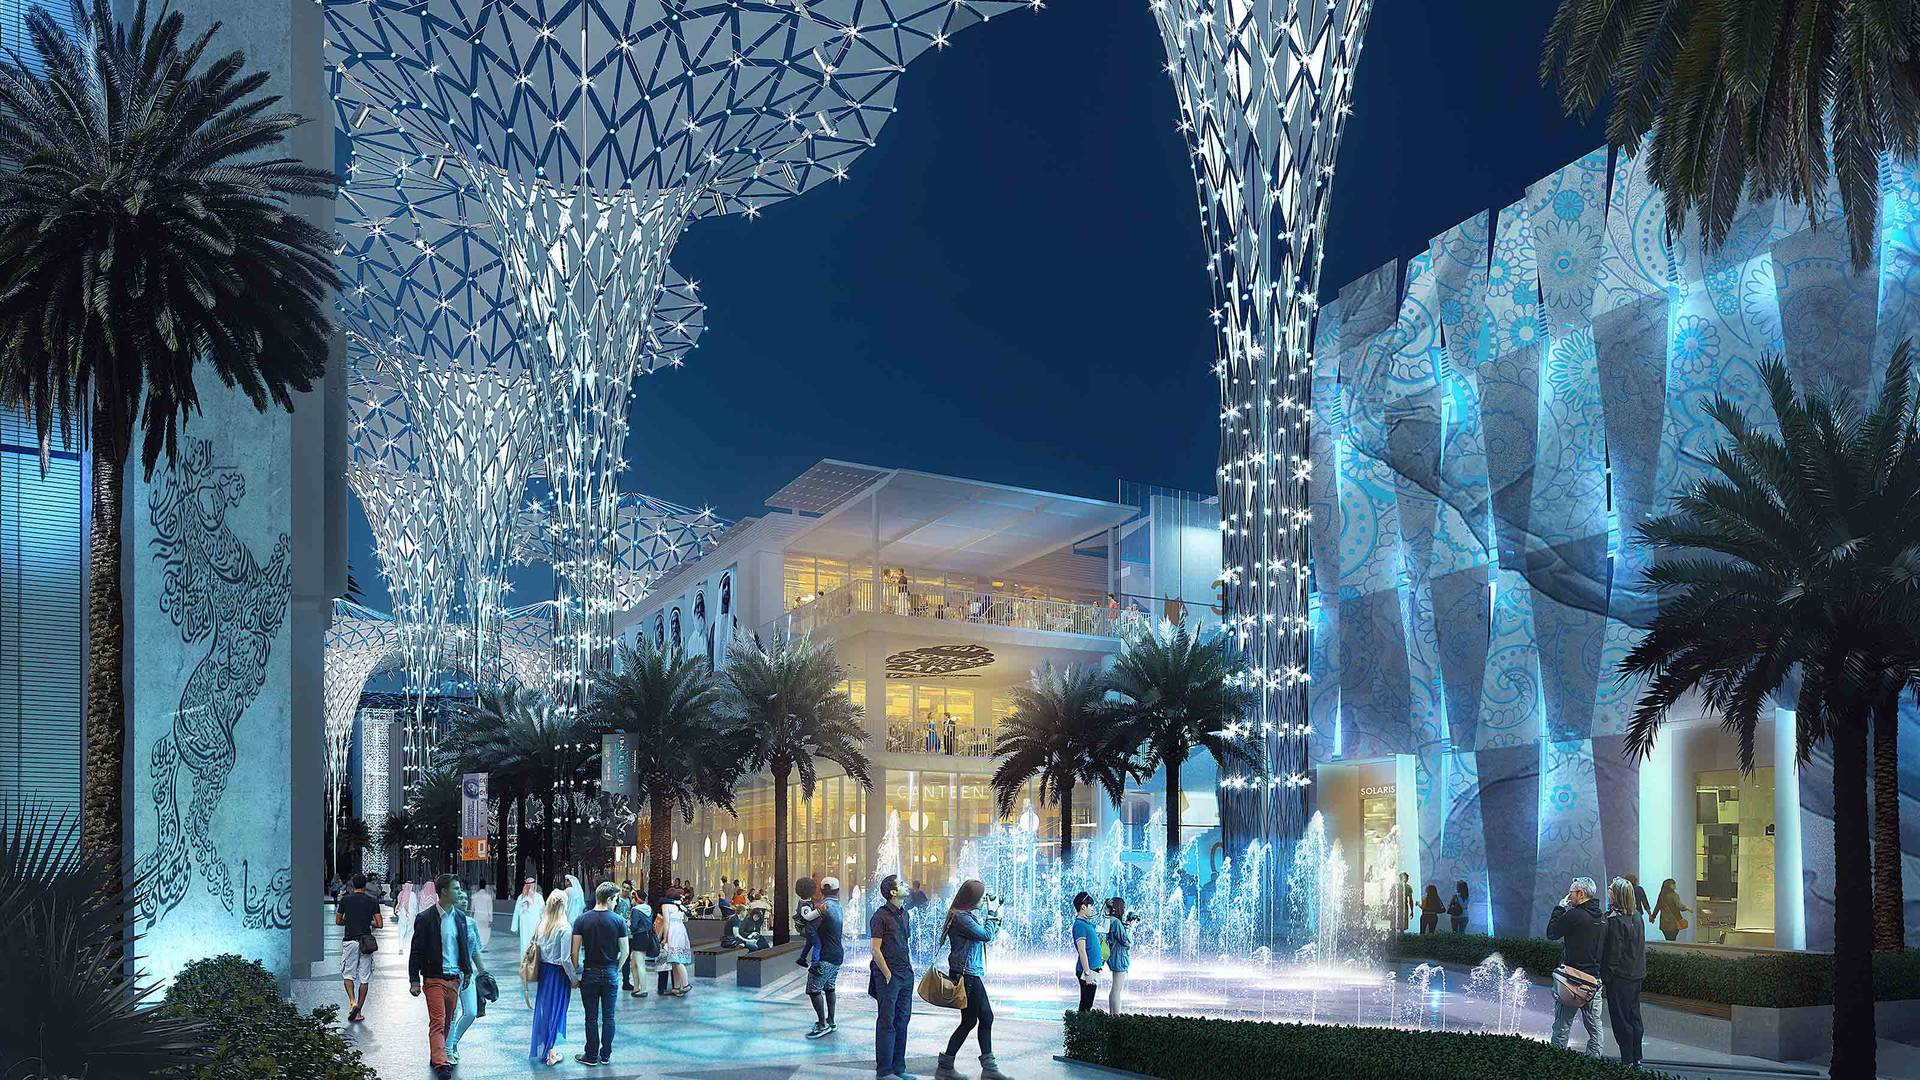 Expo 2020 : Connecting Mind, Creating The Future